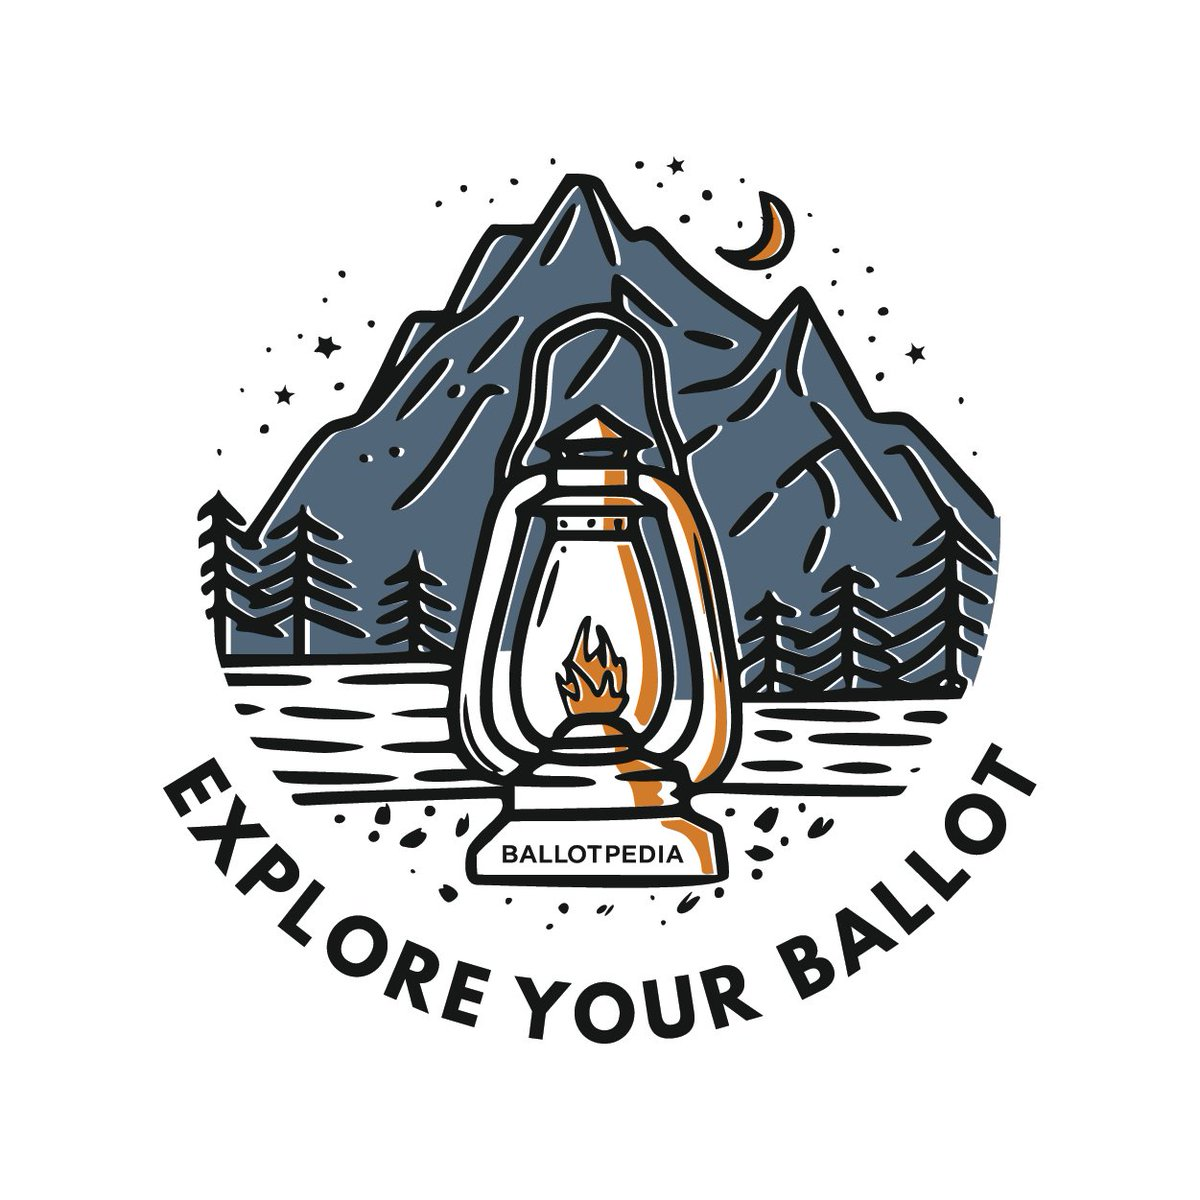 Election Day is rapidly approaching. Do you know what's on your ballot?  #ExploreYourBallot with My Vote Ballotpedia! 🗺️  Preview your ballot 📍  Save your favored candidates/initiatives ✍️  Read candidate survey responses  Find your candidates: https://t.co/GNpR3GE63V #Vote2020 https://t.co/53jydhyxrr